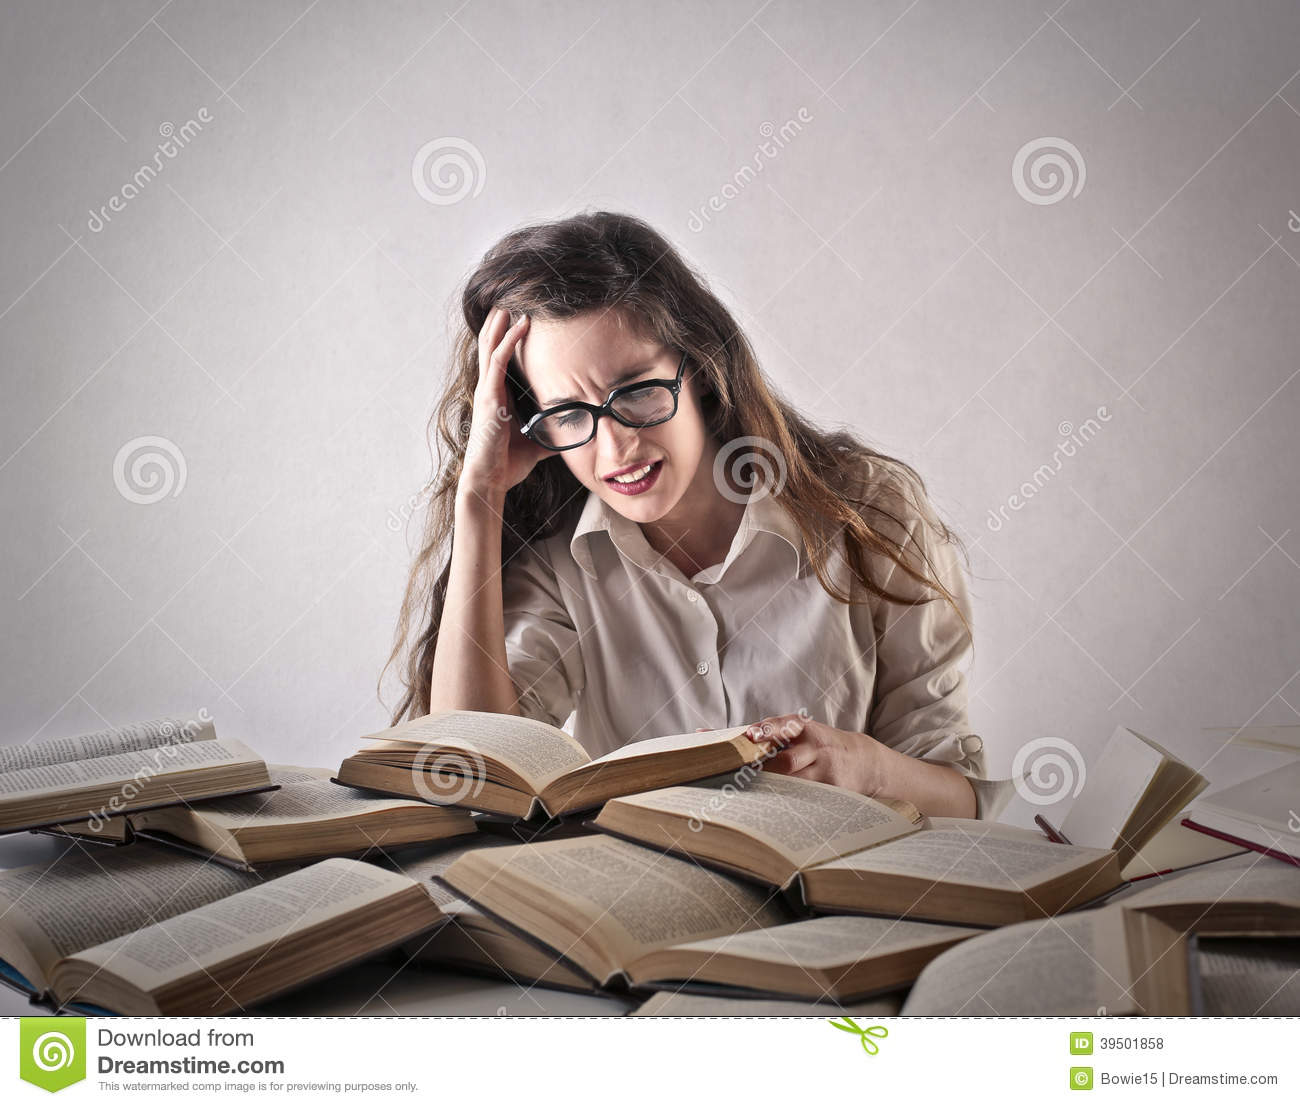 Young woman studying hard